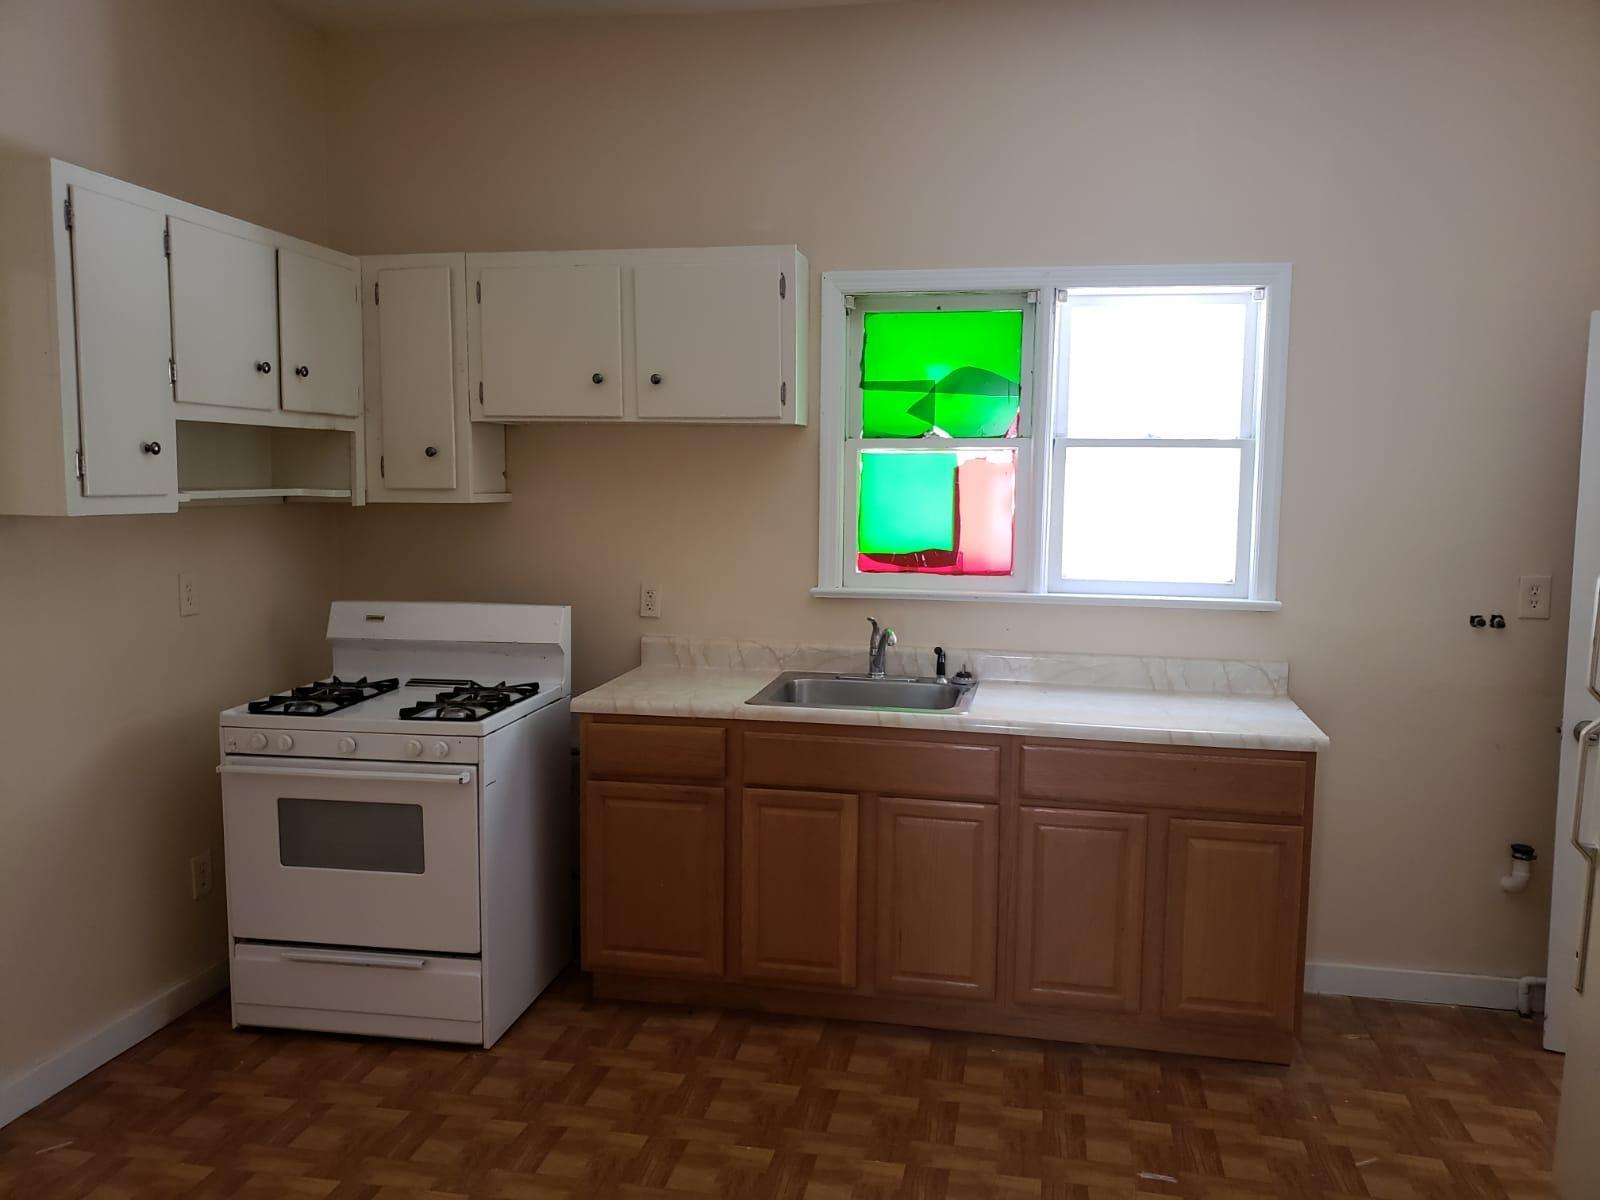 125 5th St For Rent - Elizabeth, NJ | Trulia